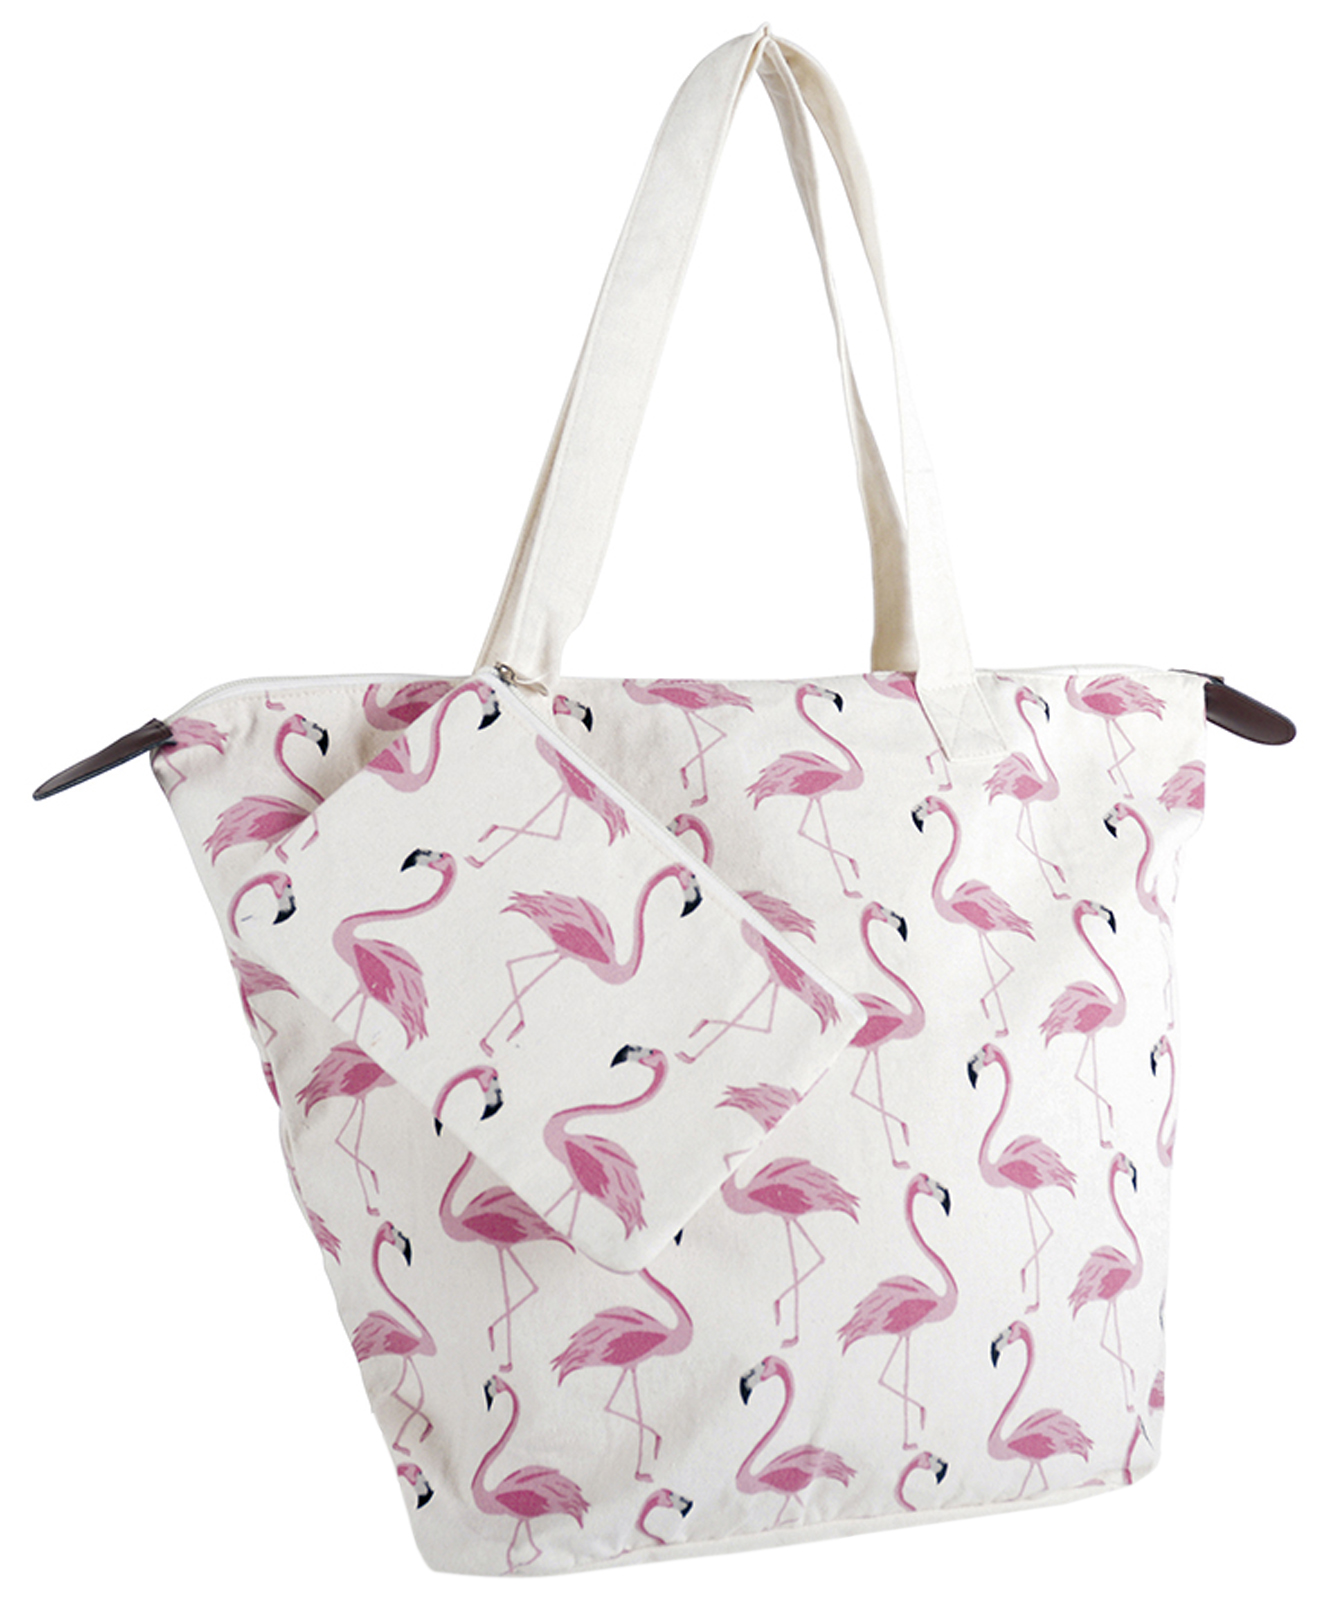 Womens Flamingo Beach Bag Large Summer Per Tote Handbag Travel Reusable